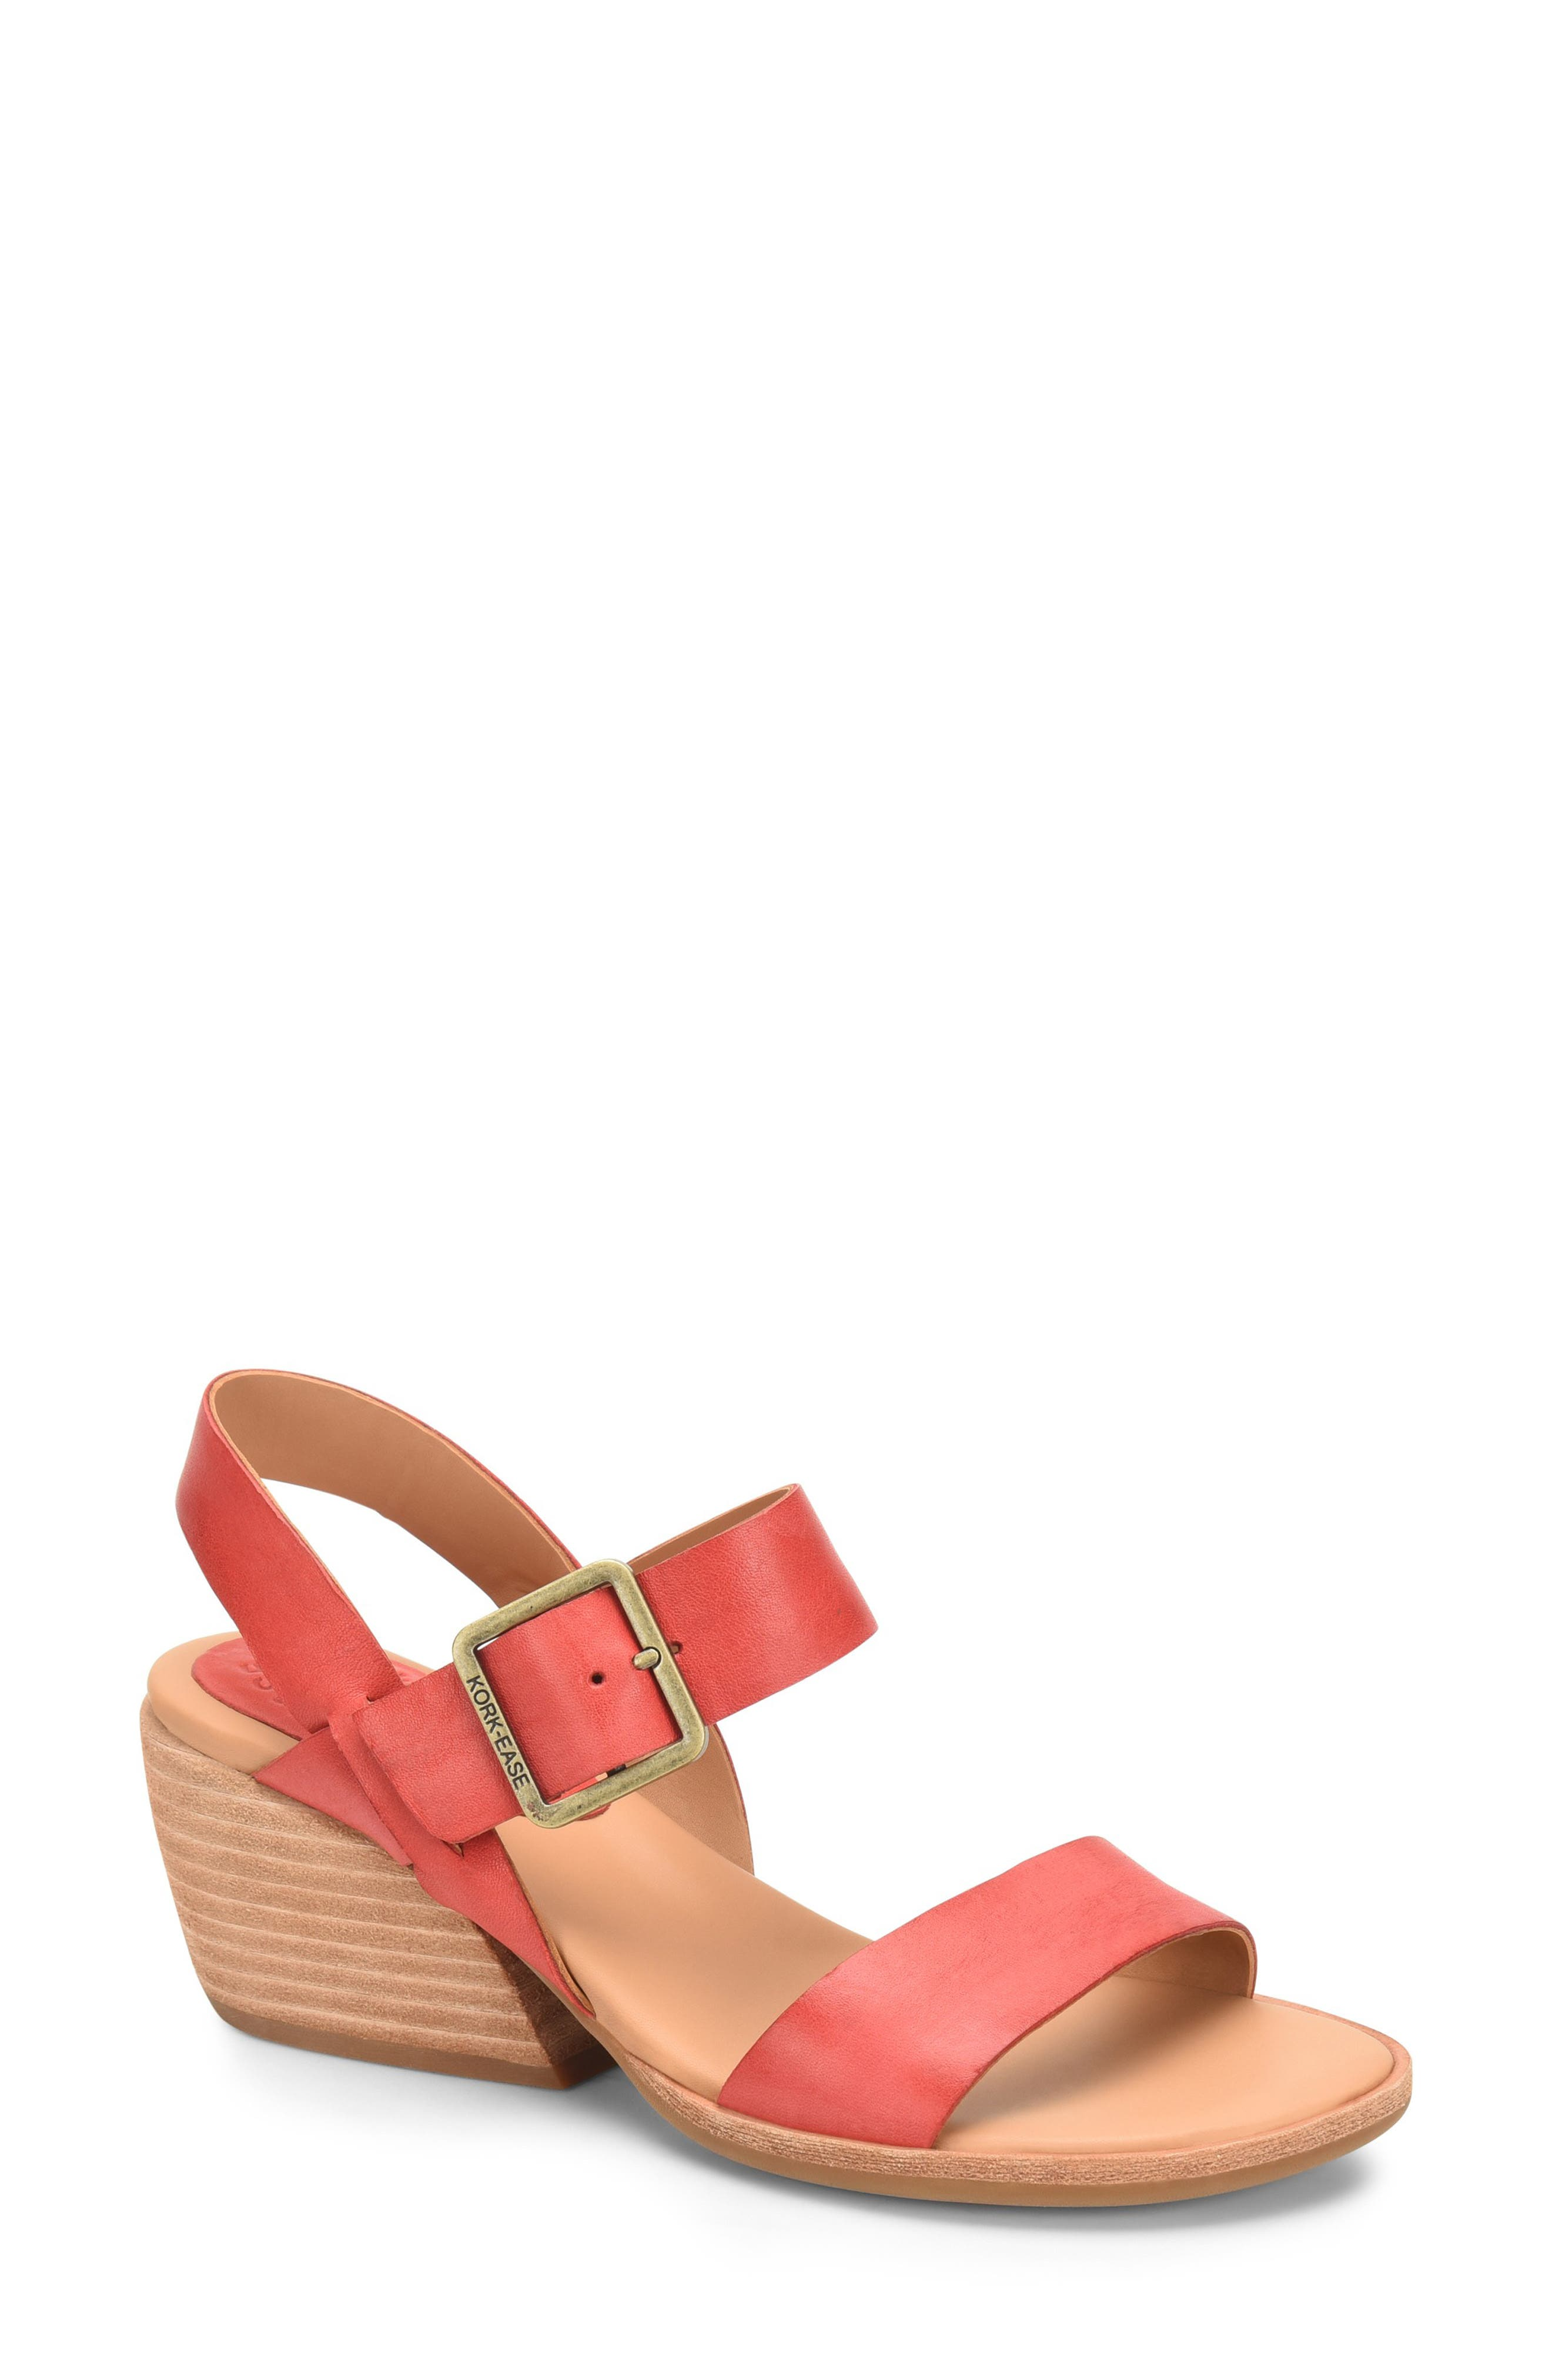 A curved stacked heel gives modern attitude to this slingback buckled sandal resting on a comfortable cushioned footbed. Style Name: Kork-Ease Speke Slingback Sandal (Women). Style Number: 6032817. Available in stores.